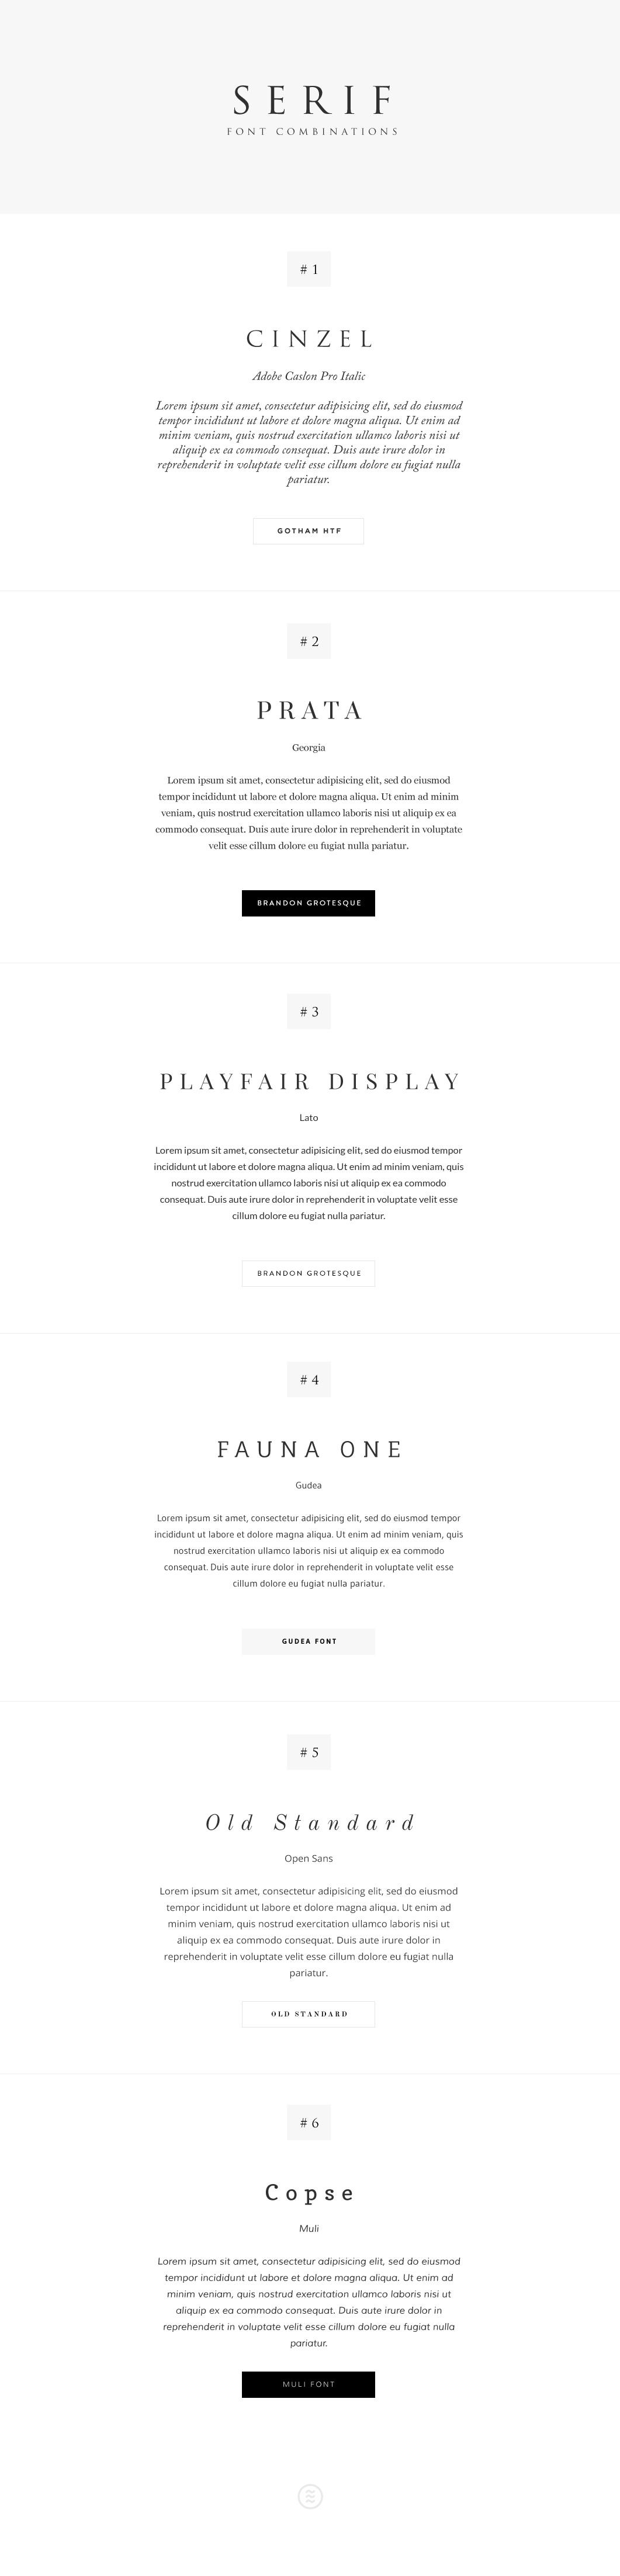 Font Combos - Choosing the best font combinations for your